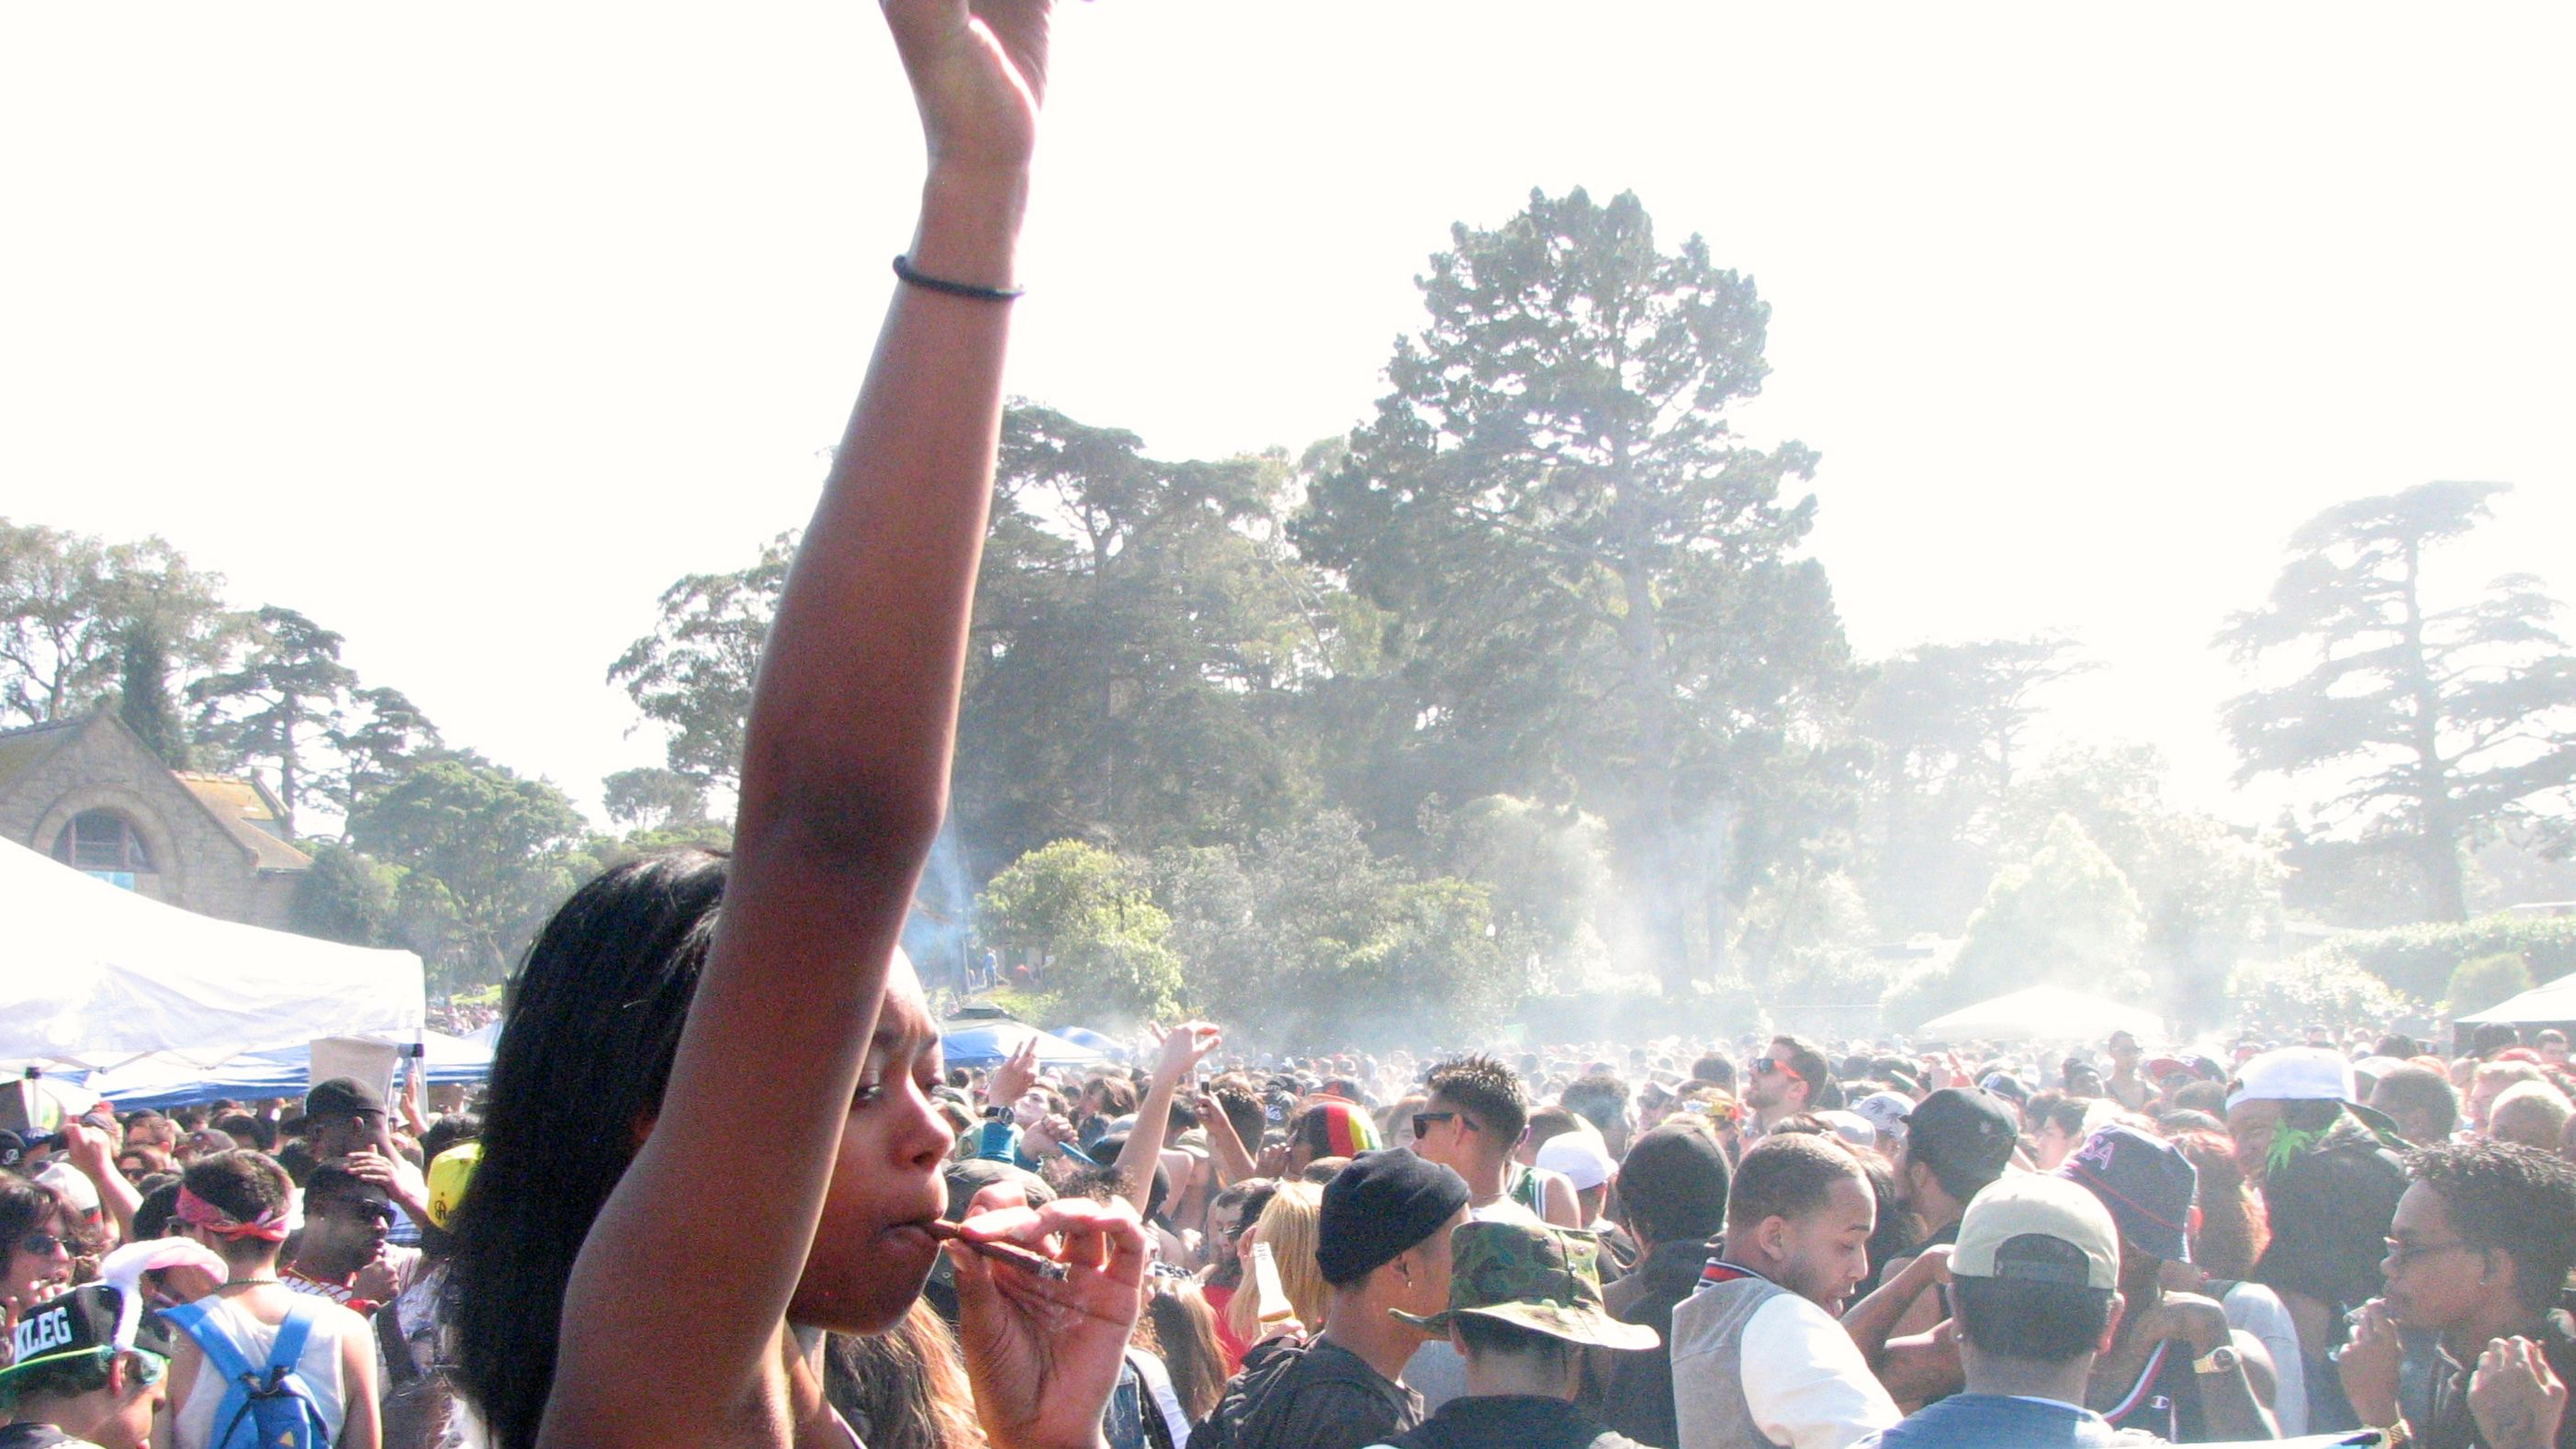 ​Tens of thousands of folks light up before during and after 4:20 p.m. on Hippie Hill. in San Francisco.